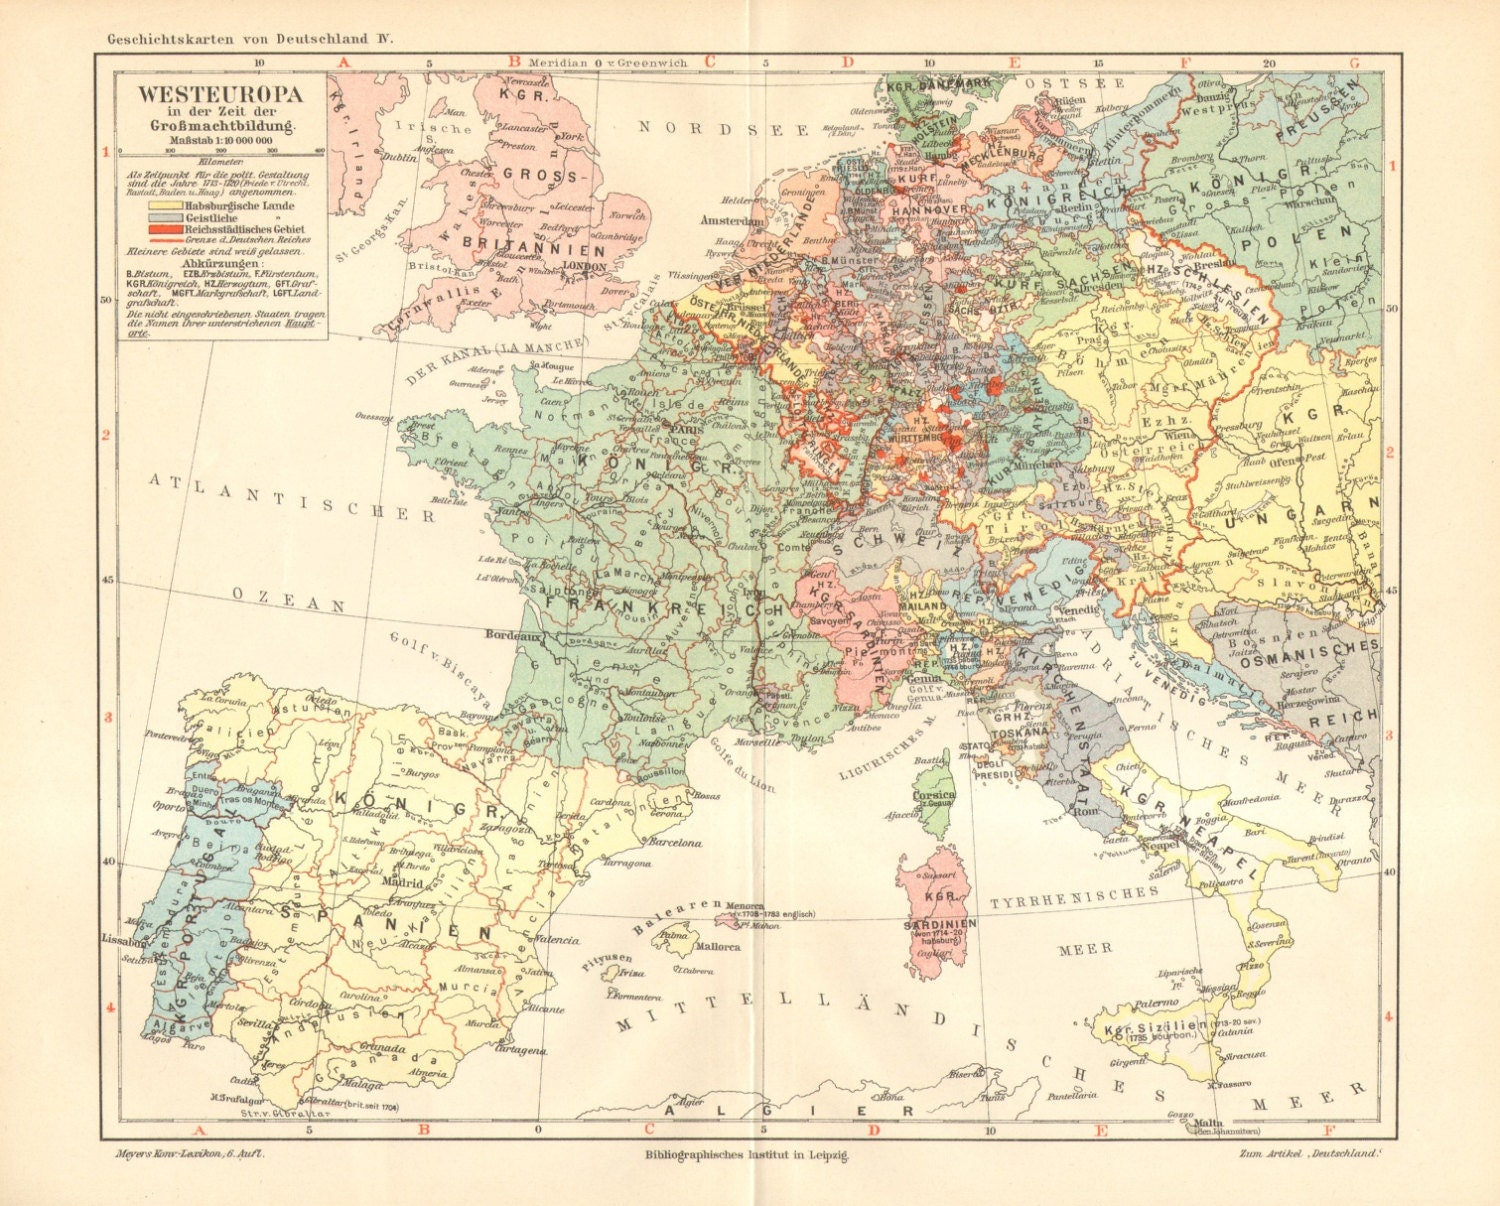 1907 Original Antique Political Map of Europe after the Treaty of Utrecht